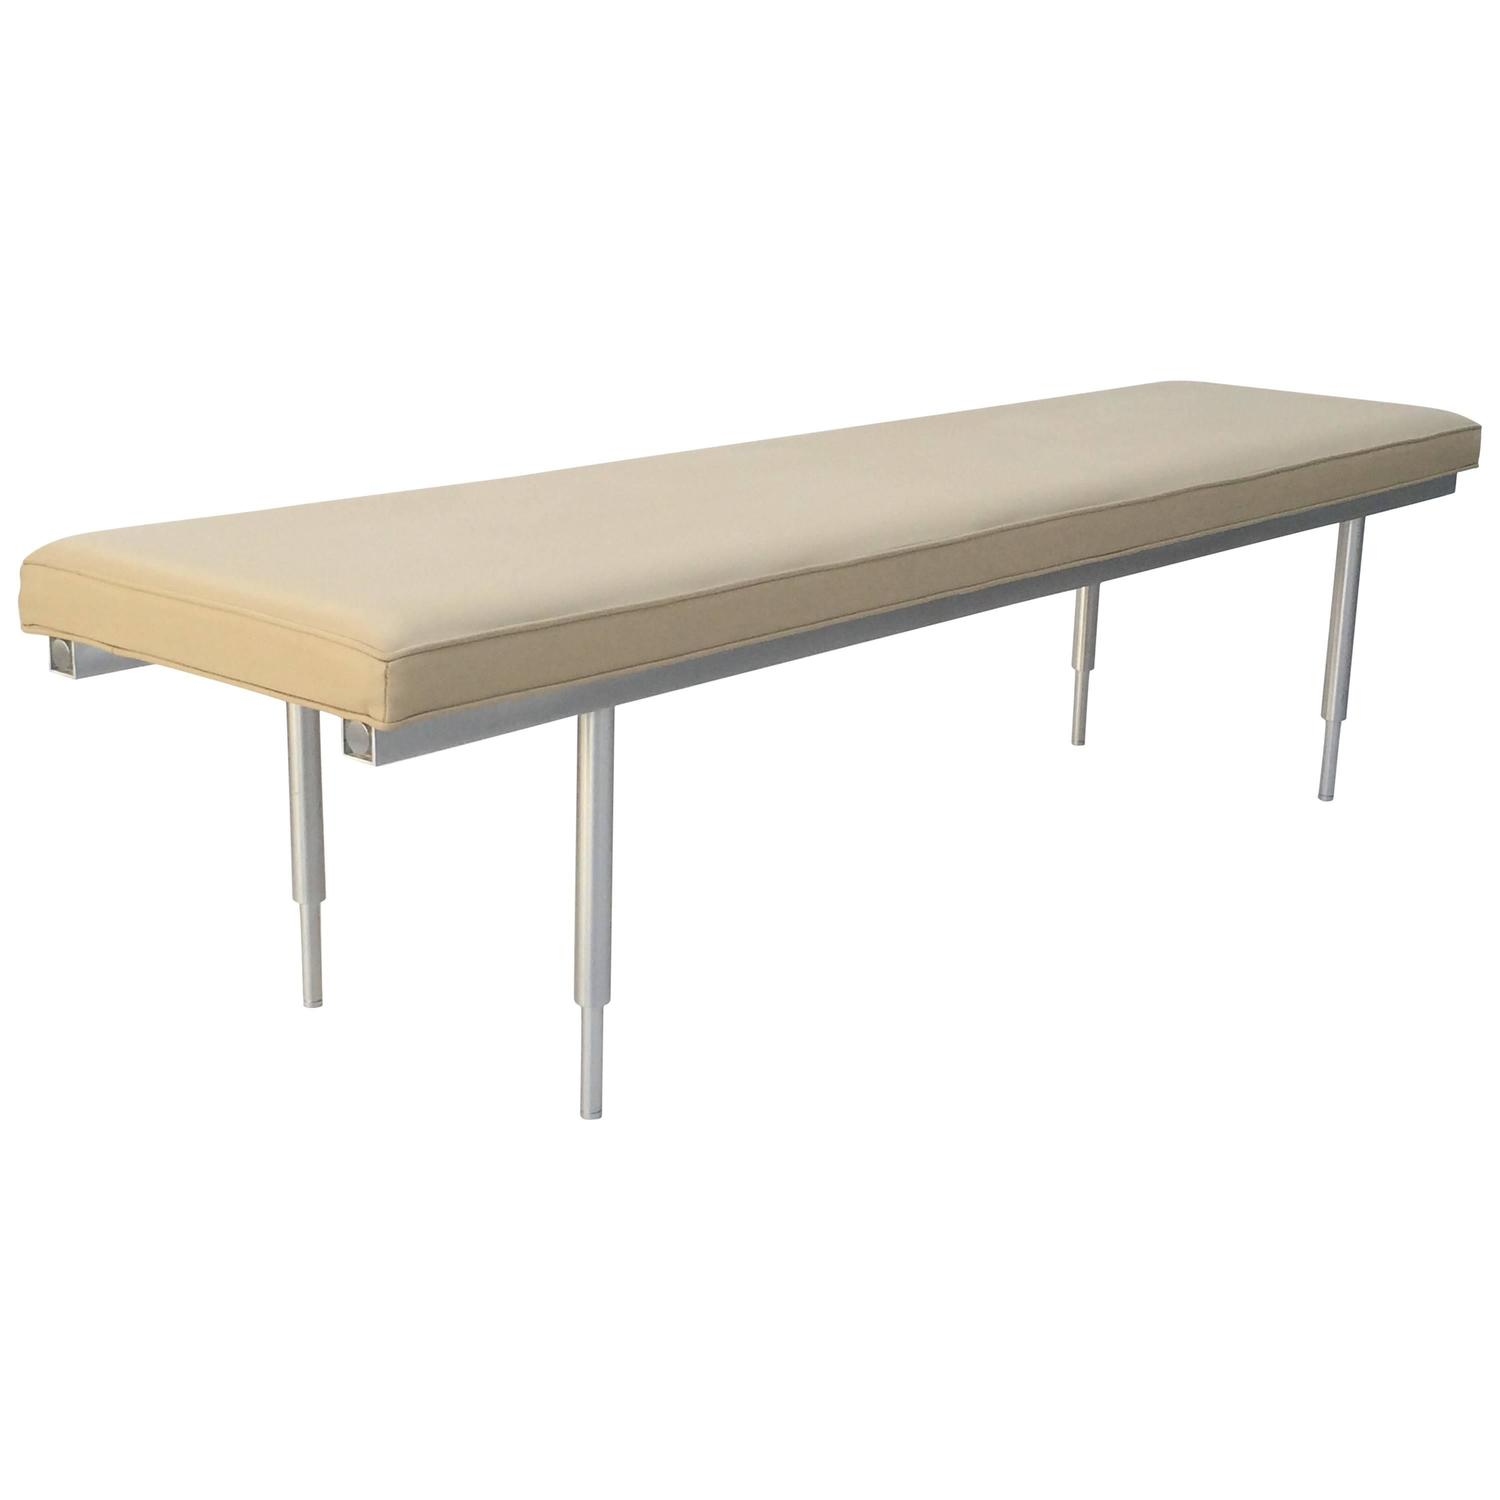 #876F44 Brushed Aluminum And Leather Bench At 1stdibs with 1500x1500 px of Highly Rated Leather Seating Bench 15001500 picture/photo @ avoidforclosure.info